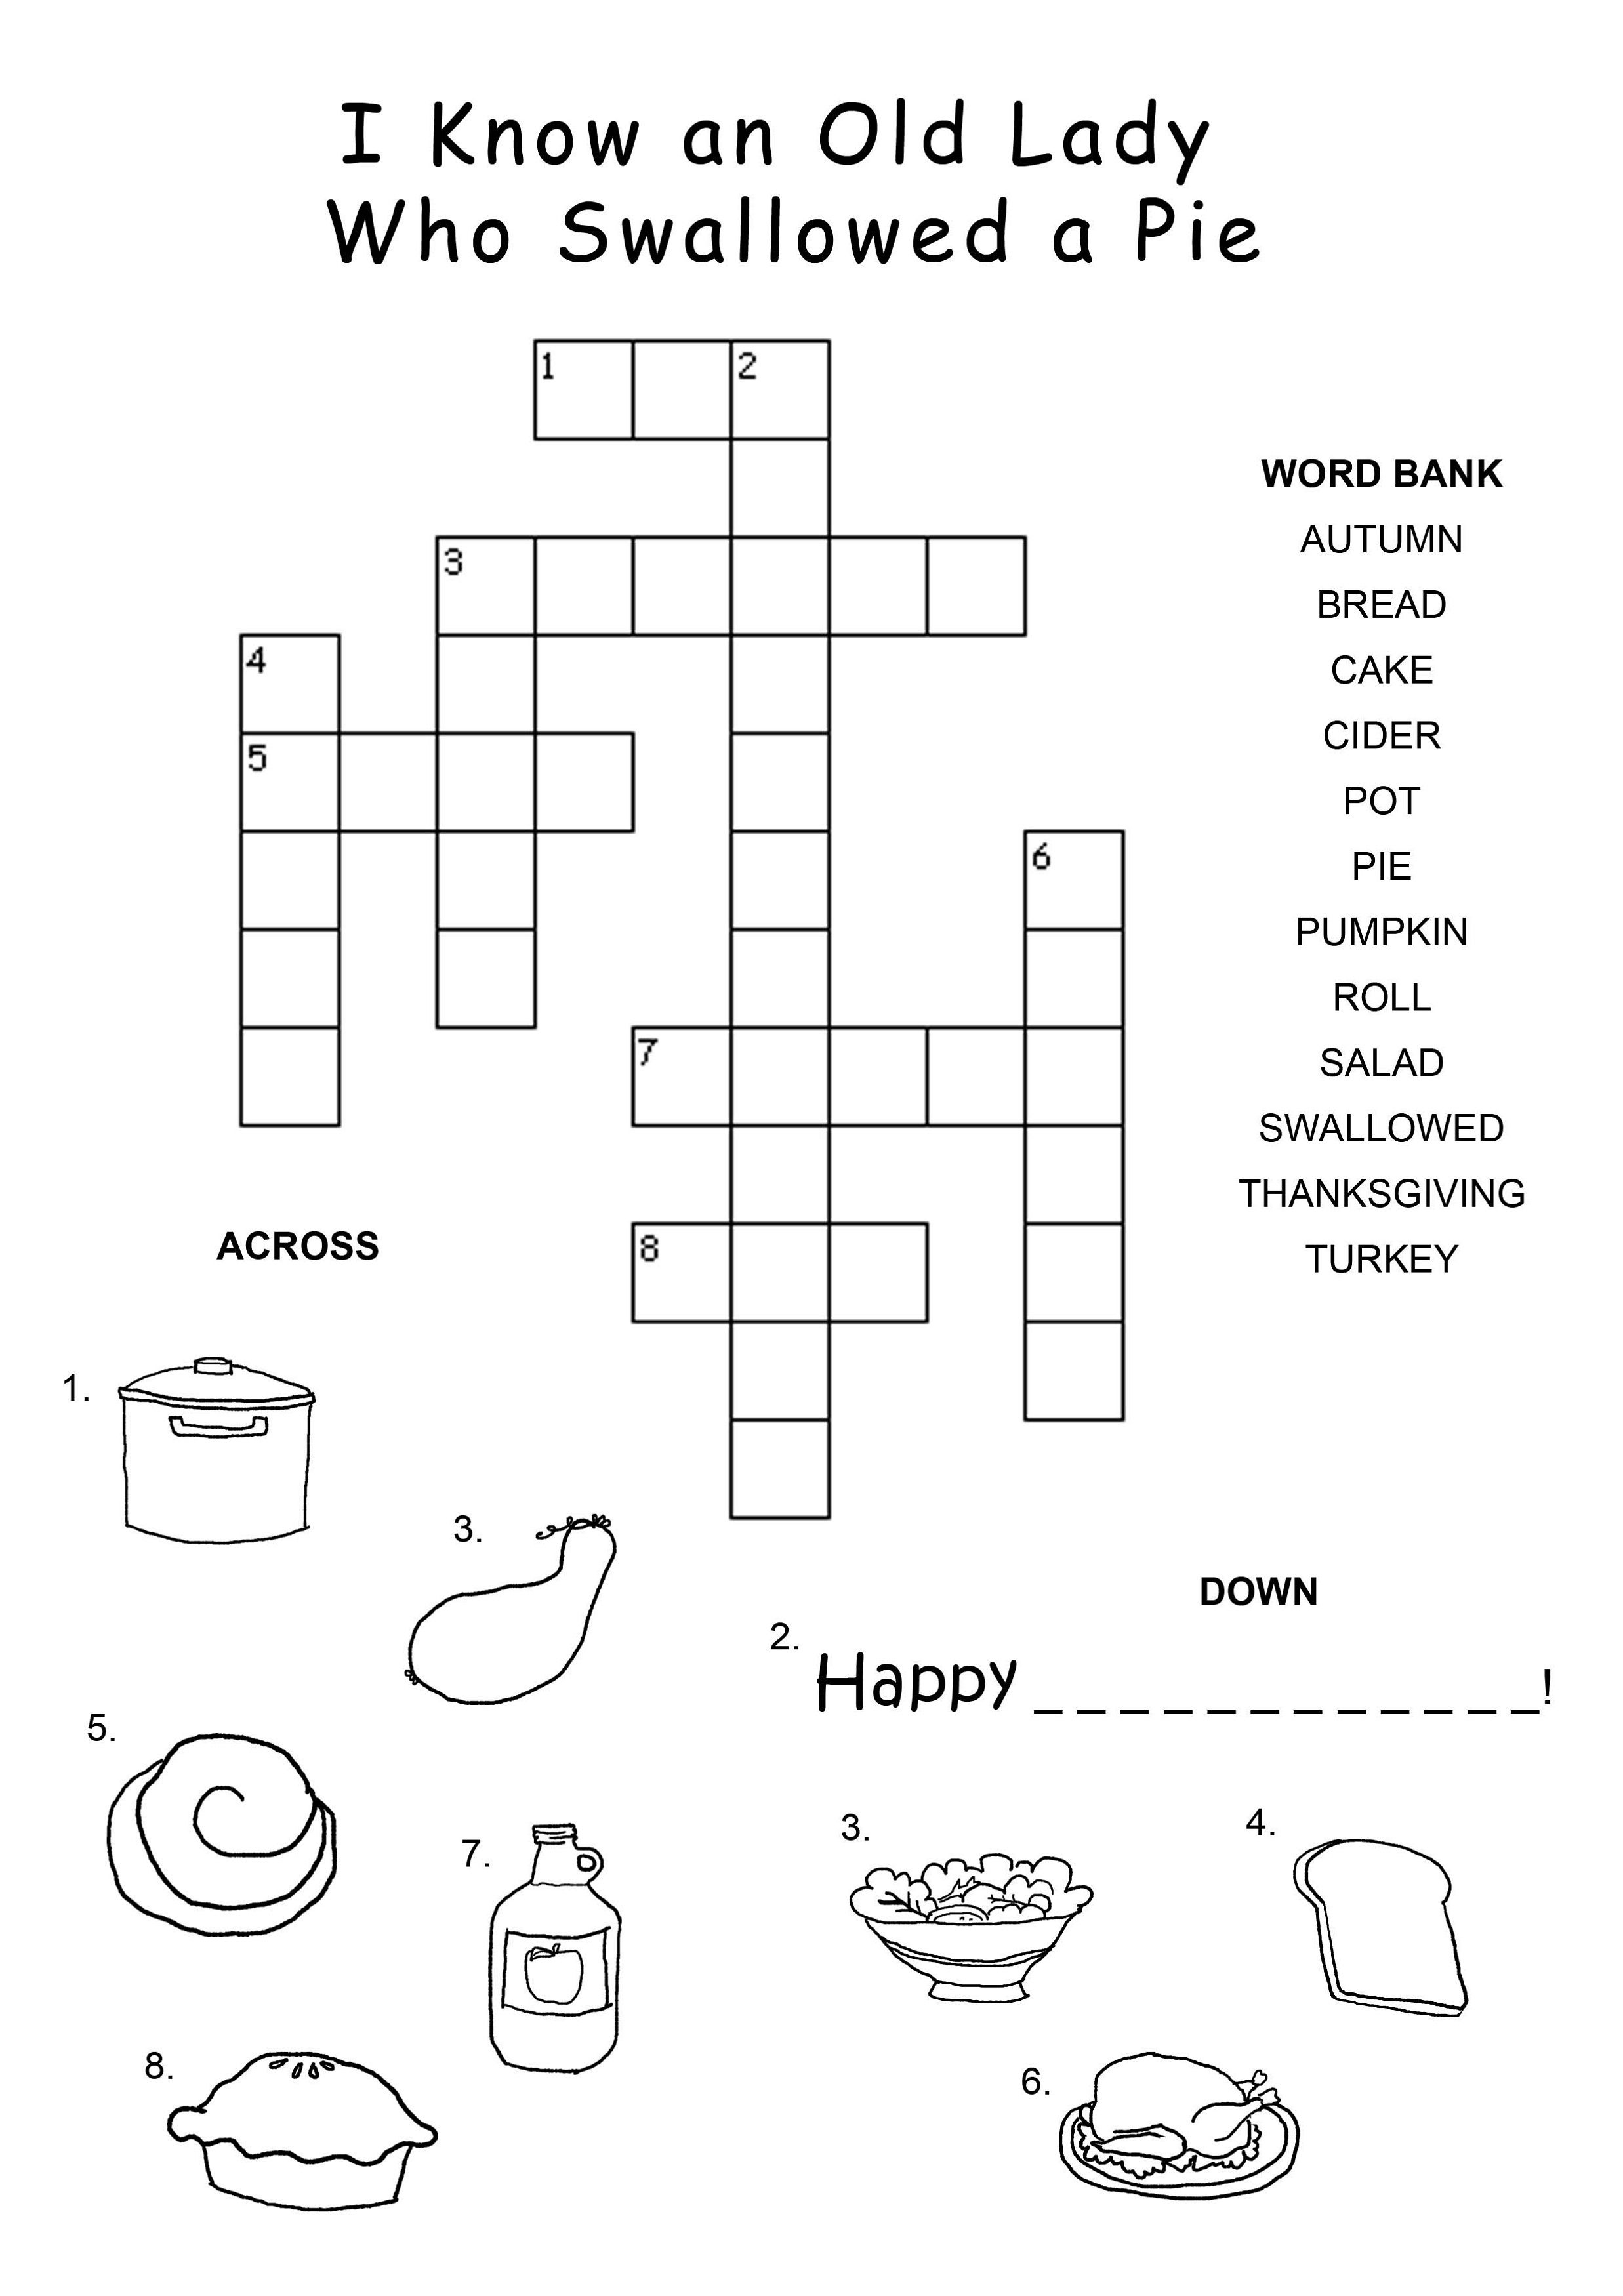 Crossword Puzzles For Kids - Best Coloring Pages For Kids - Printable Crossword Puzzles For 6 Year Olds